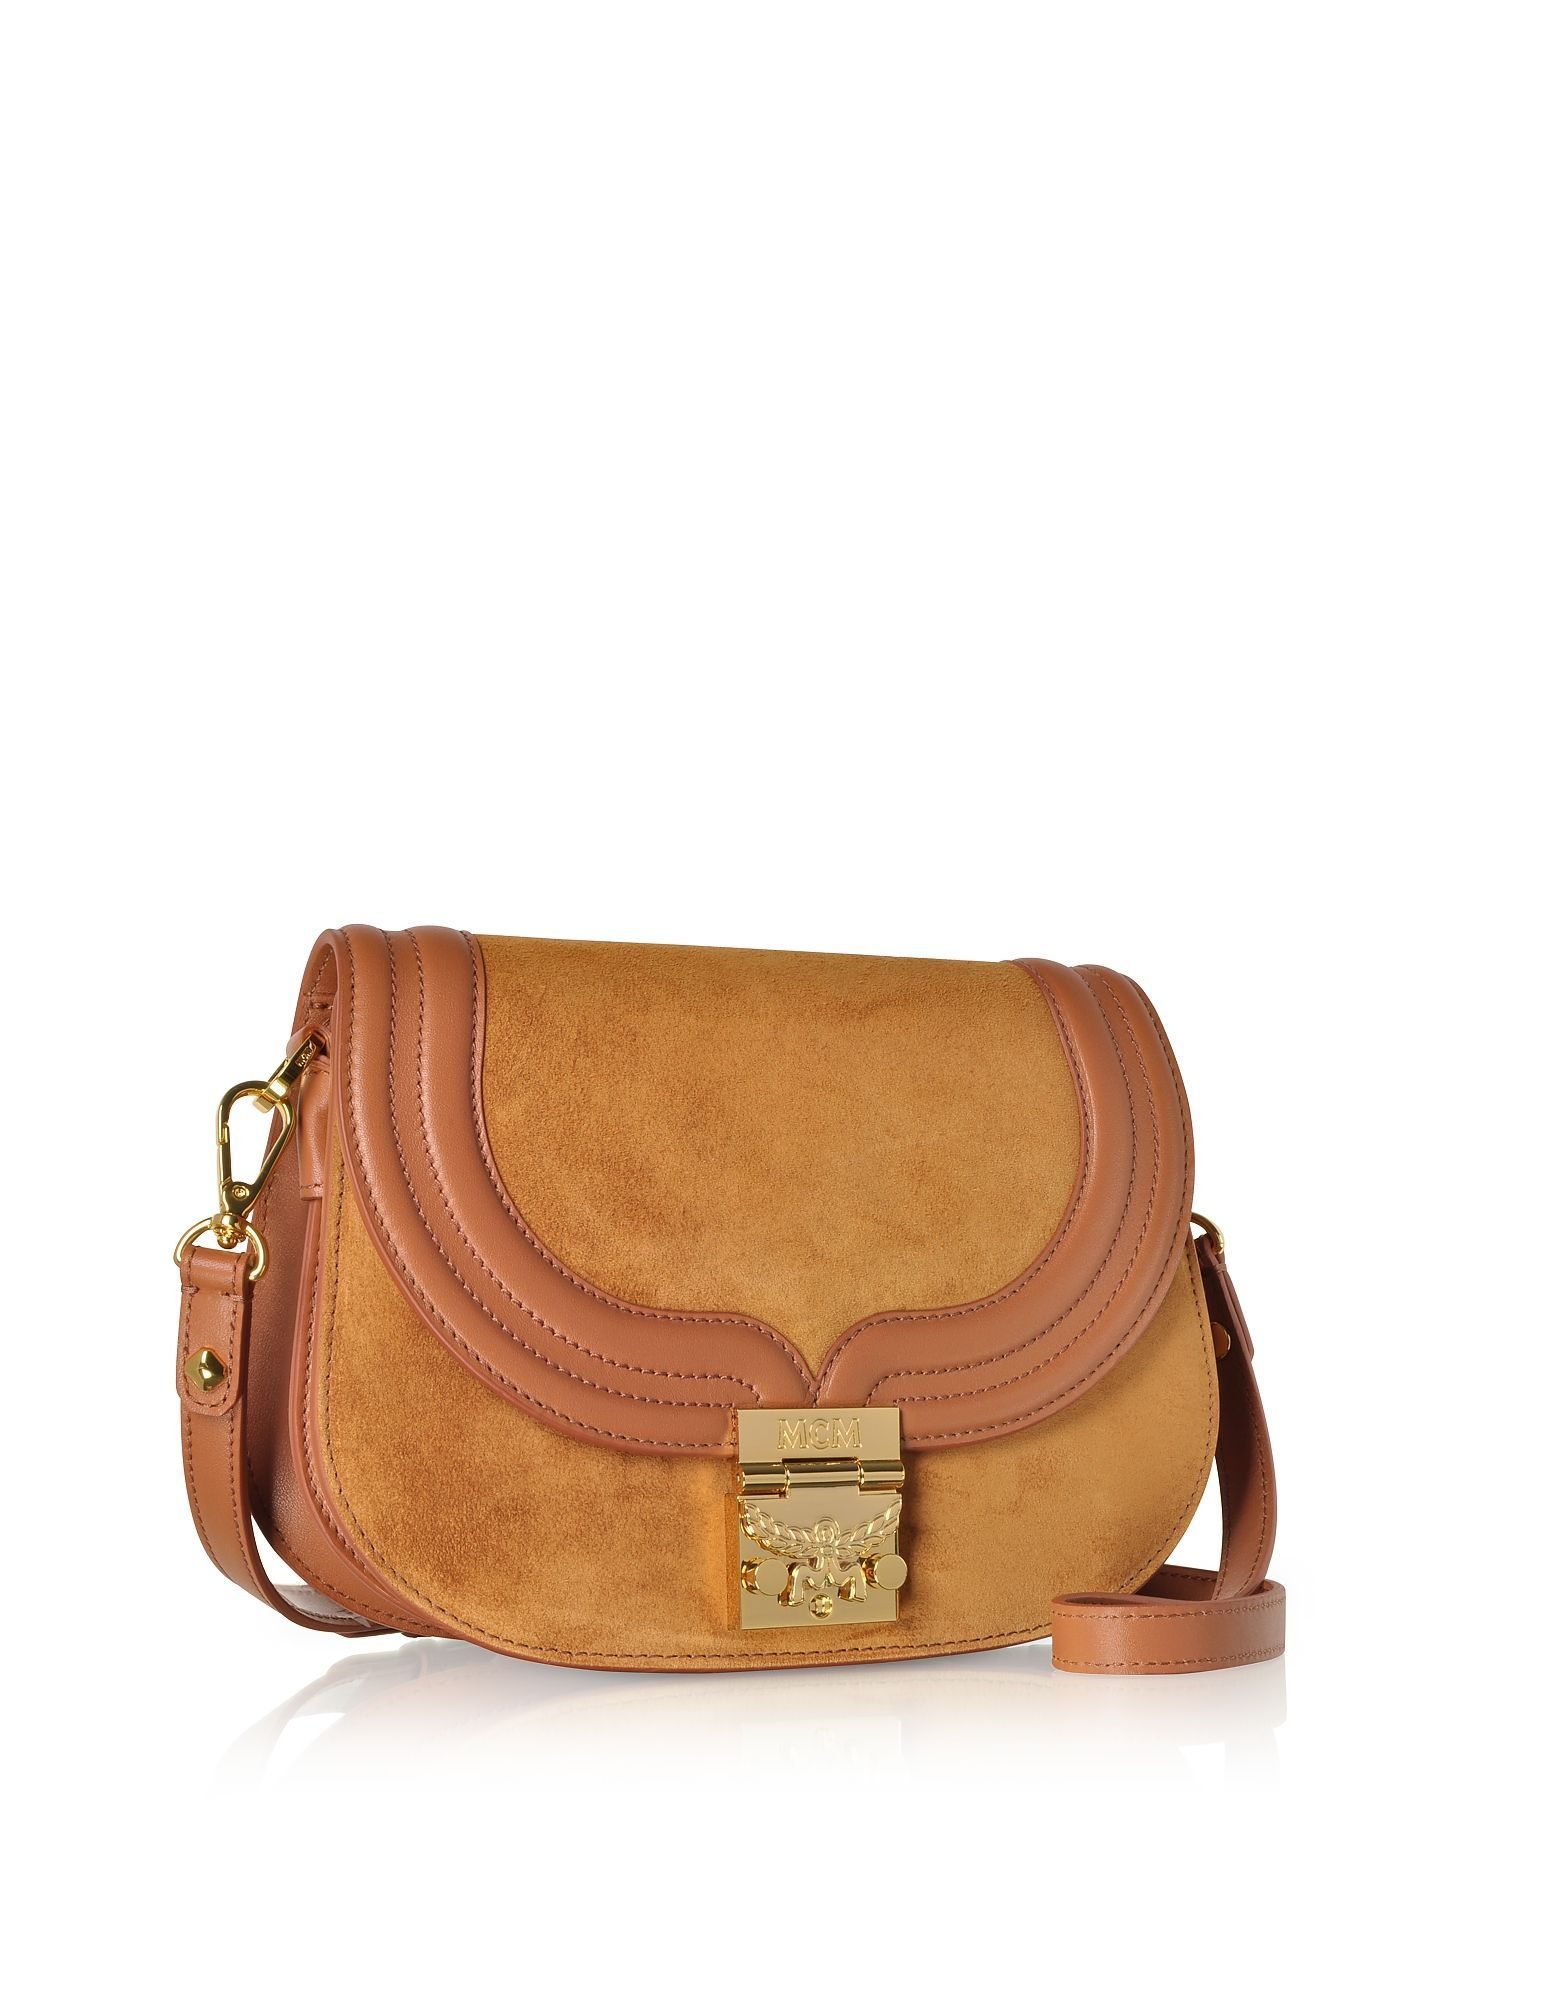 MCM WOMEN'S MWS8STS94CO001 BROWN LEATHER SHOULDER BAG